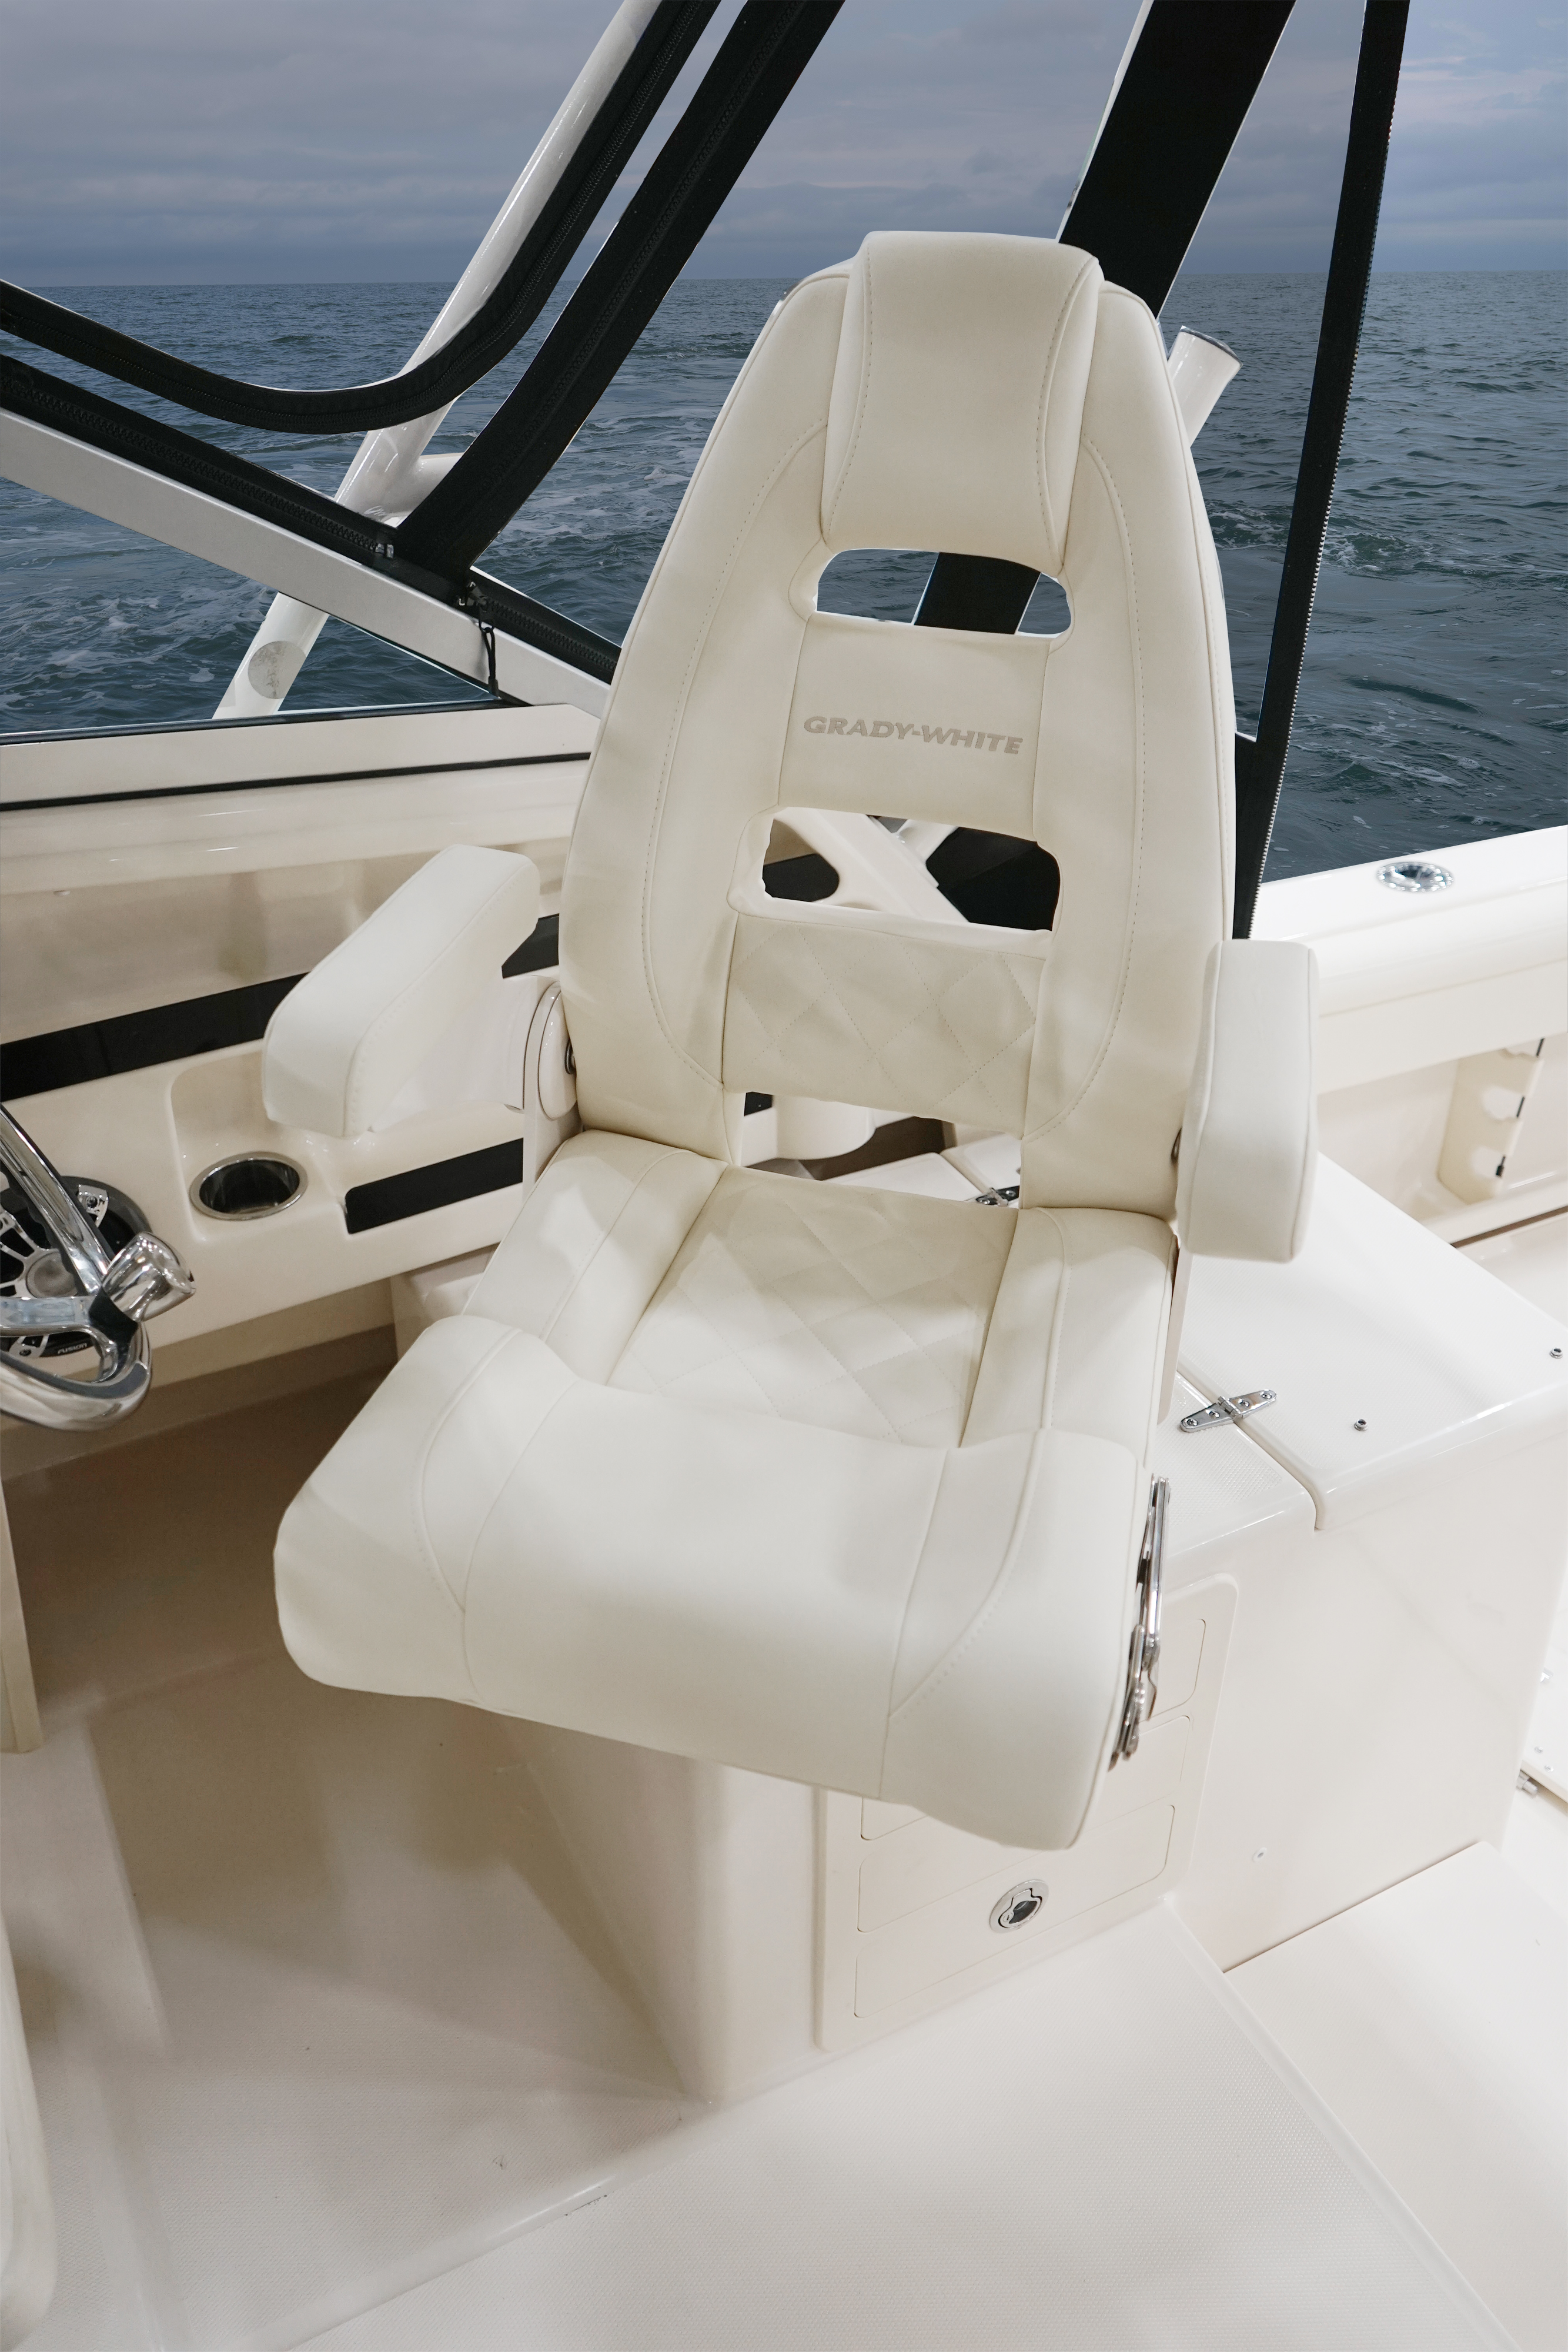 Grady-White Marlin 300, 30-foot walkaround cabin command elite helm chair with flip up bolsters and armrests